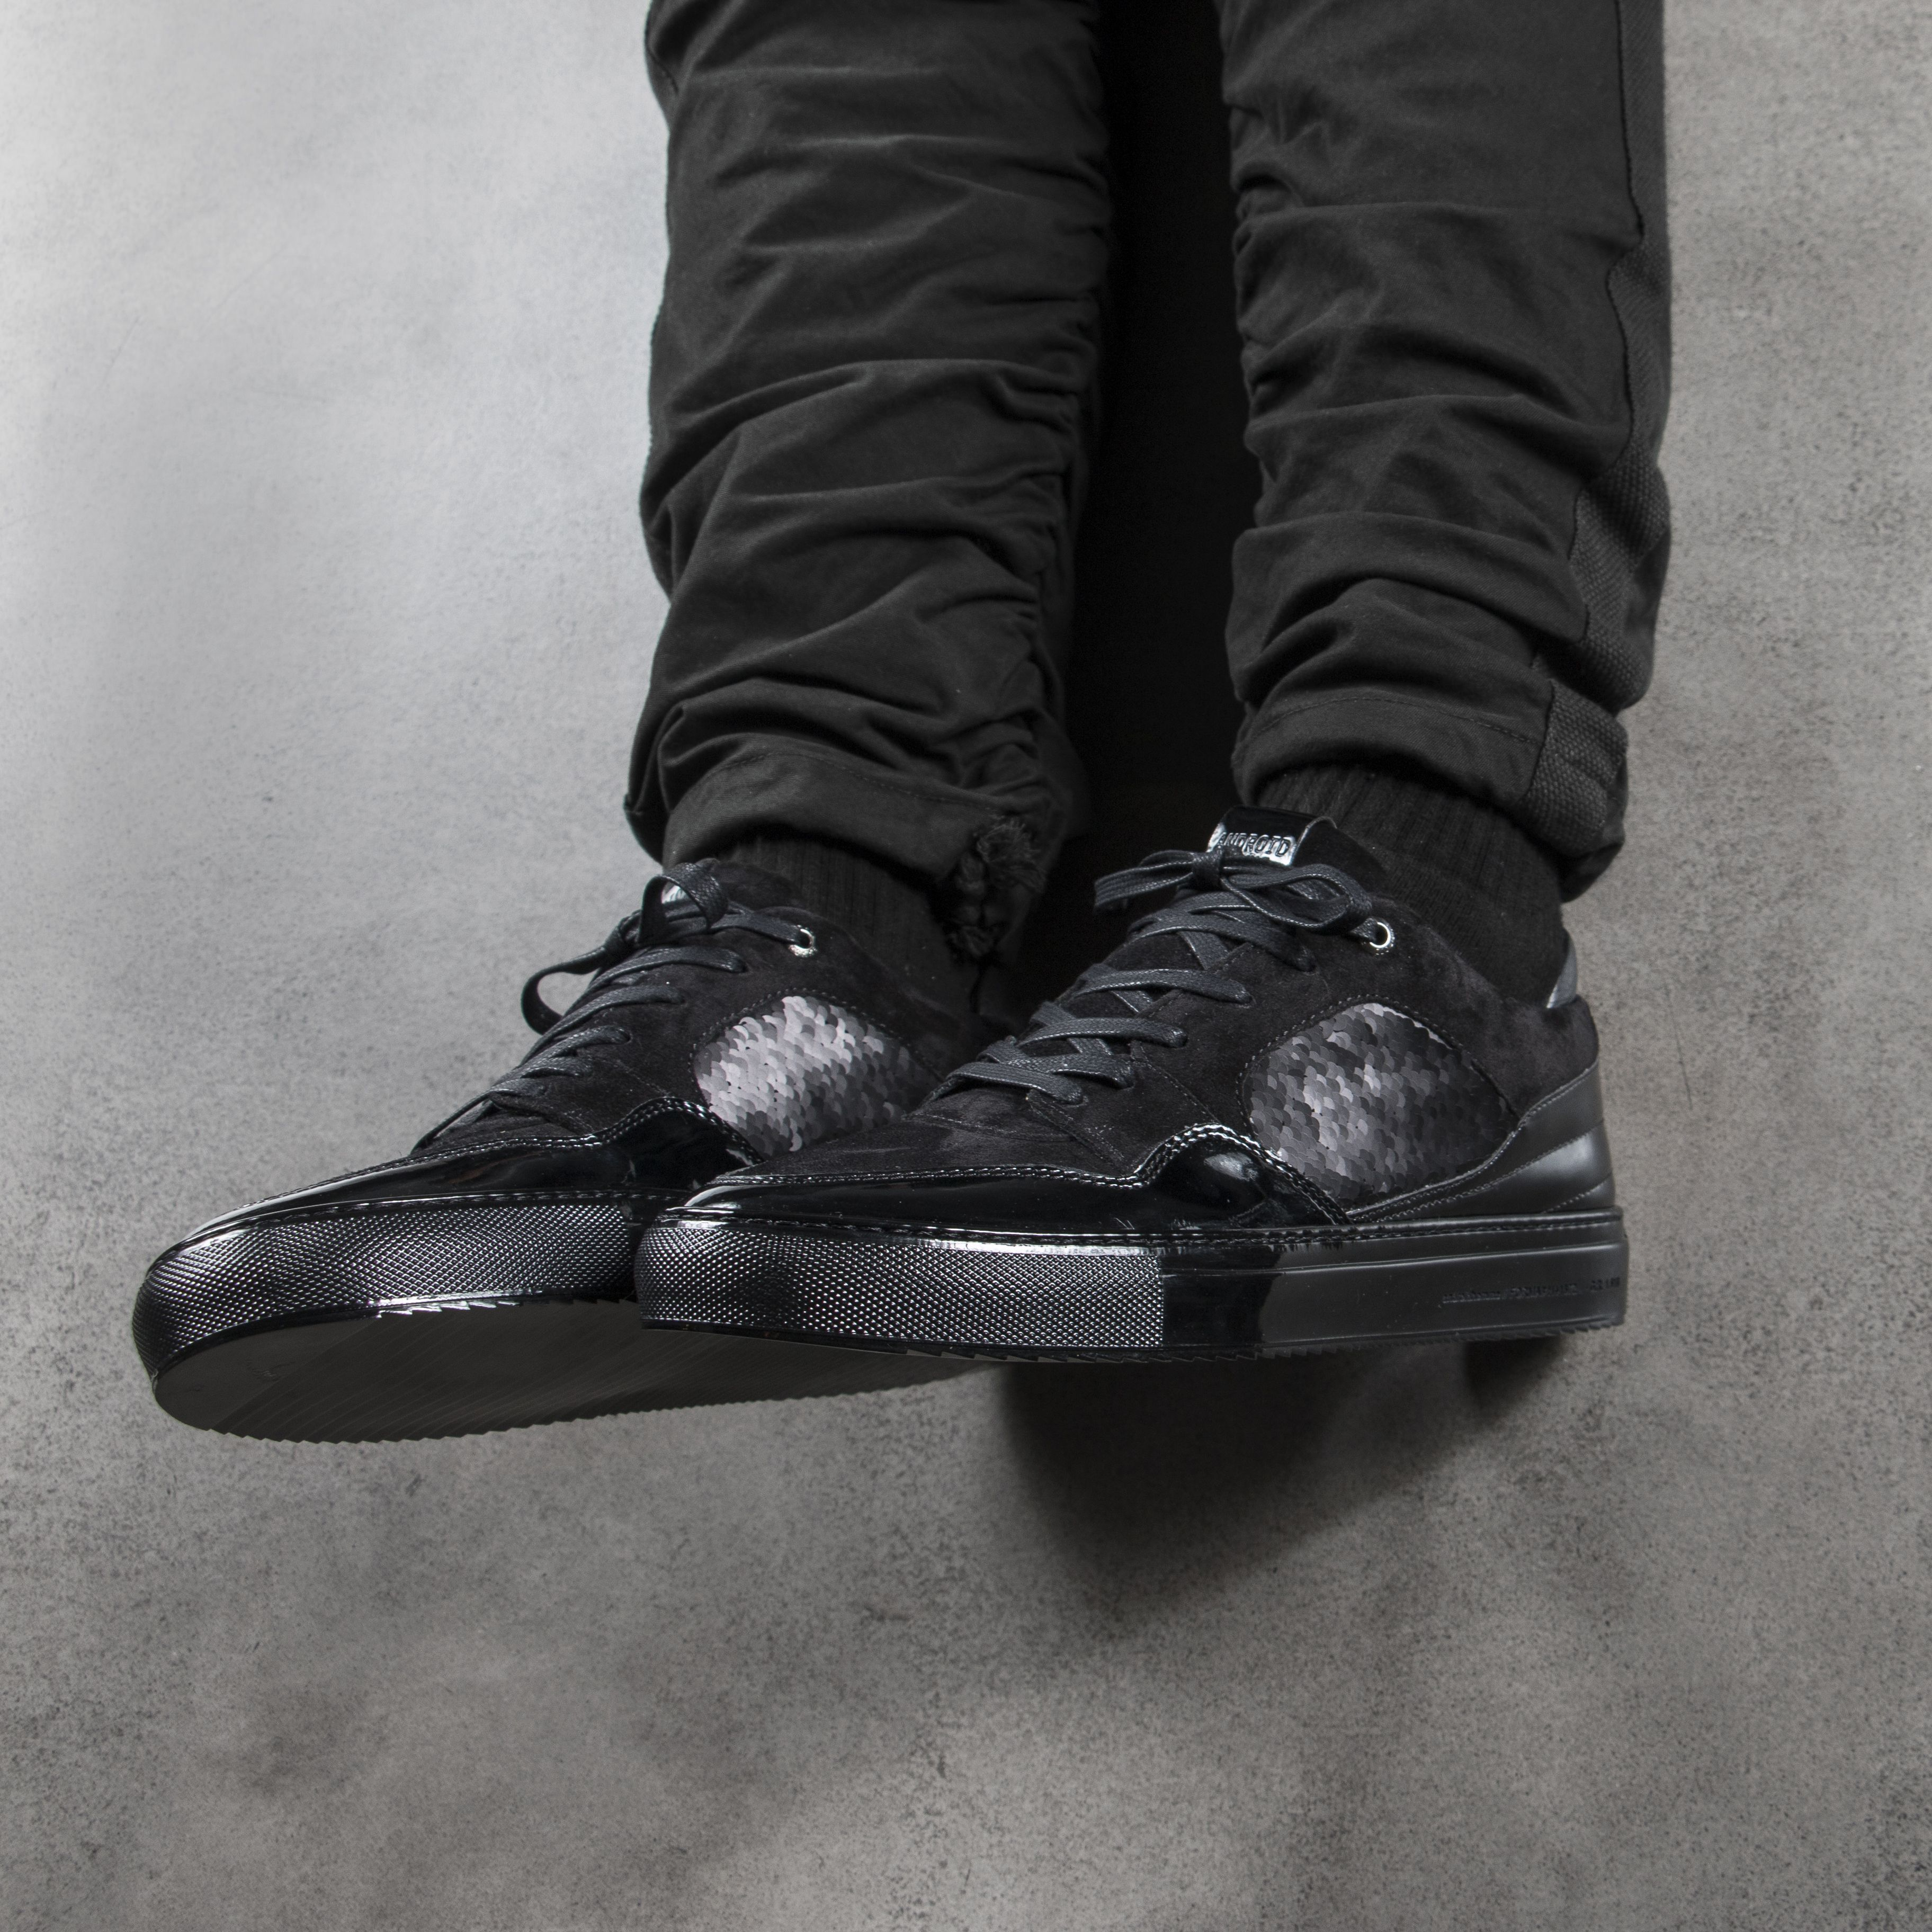 Android Homme Black Propulsion Mid Sequin Trainers Free Collect In Store Available 295 00 Save 20 Vat For Non Eu C All Black Sneakers Footwear Designer Shoes